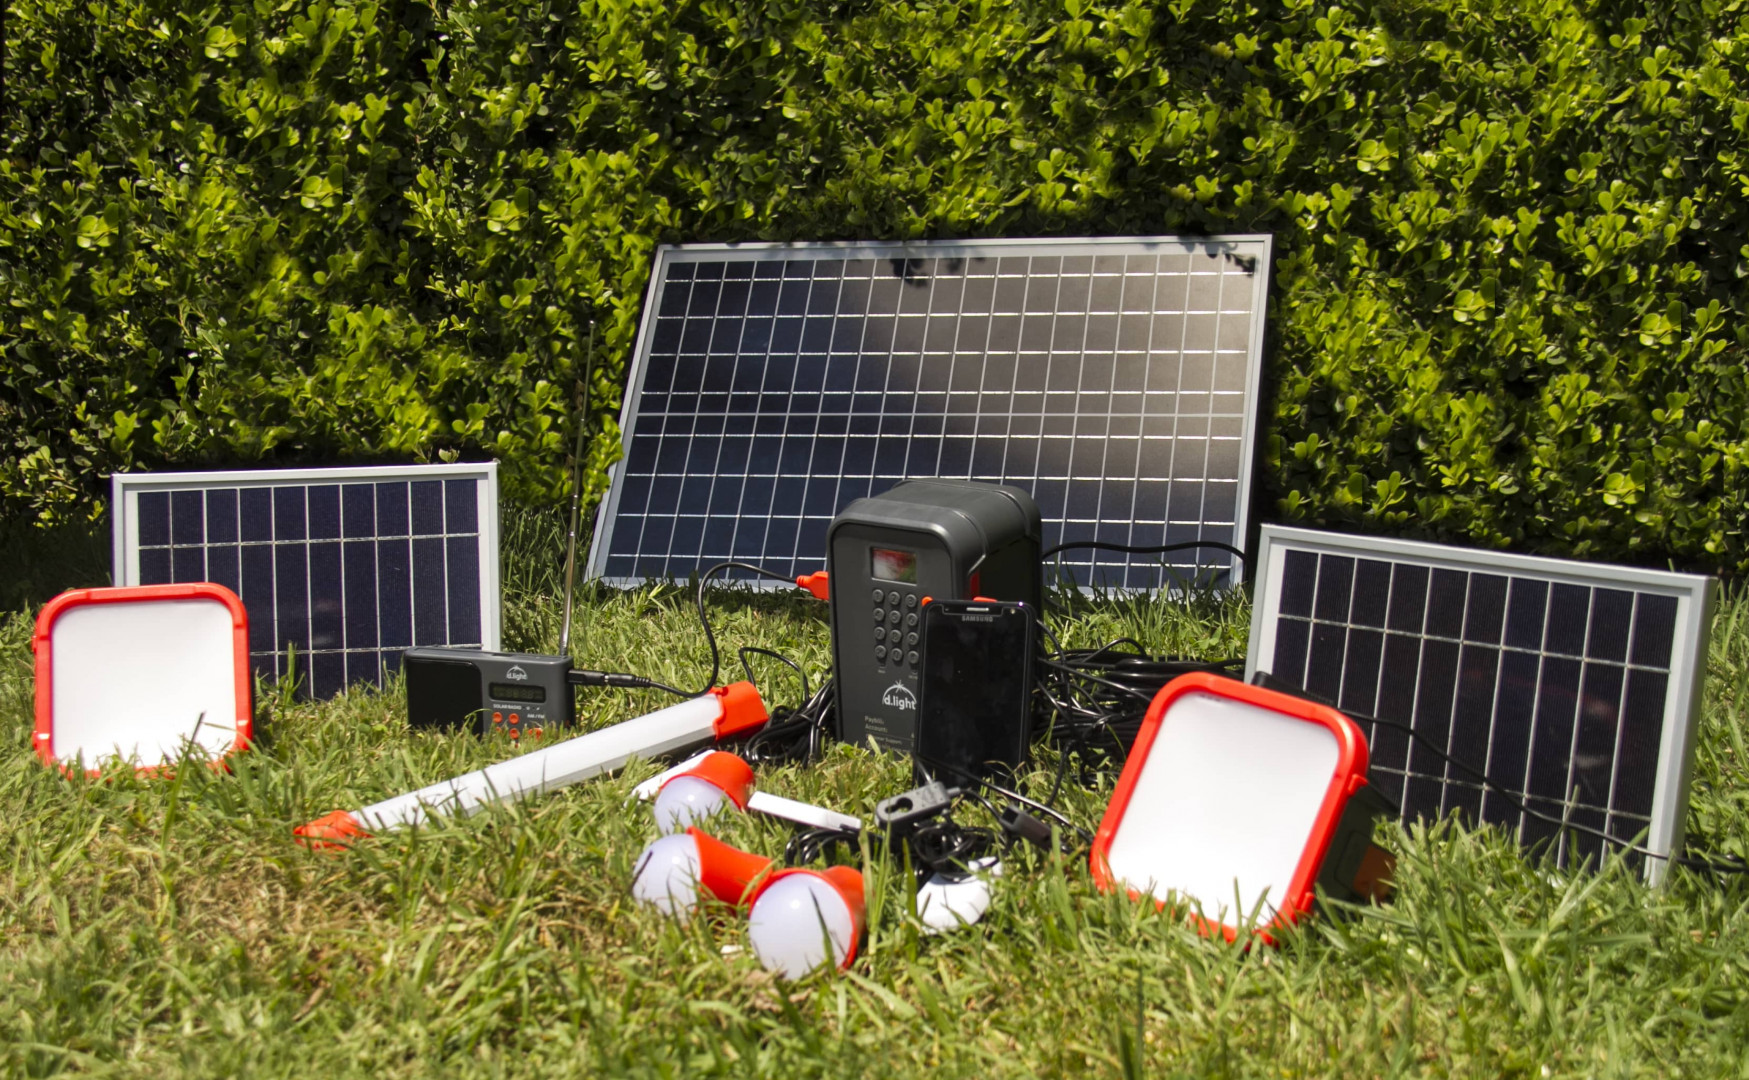 Achieve Argentina 's vision for solar energy with d.light #article